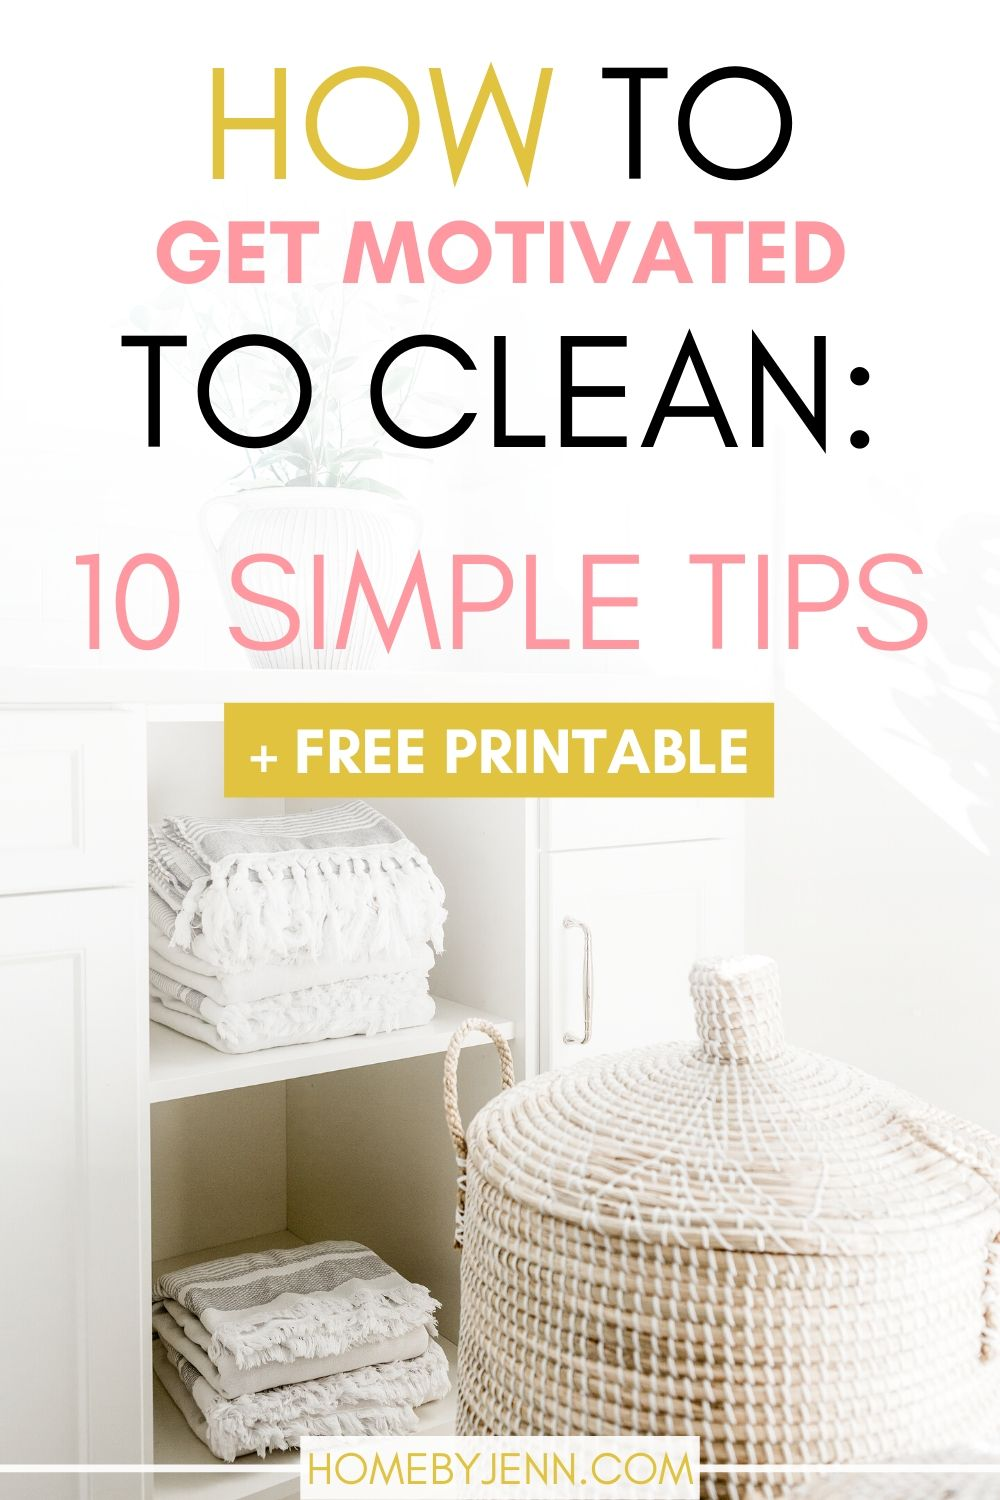 How to get motivated to clean your dirty home is hard. Knowing where to start cleaning and setting up a cleaning routine will help with cleaning motivation. #clean #cleanhome #cleaningmotivation #cleaningtips #cleaninghacks #quickcleaningtips via @homebyjenn